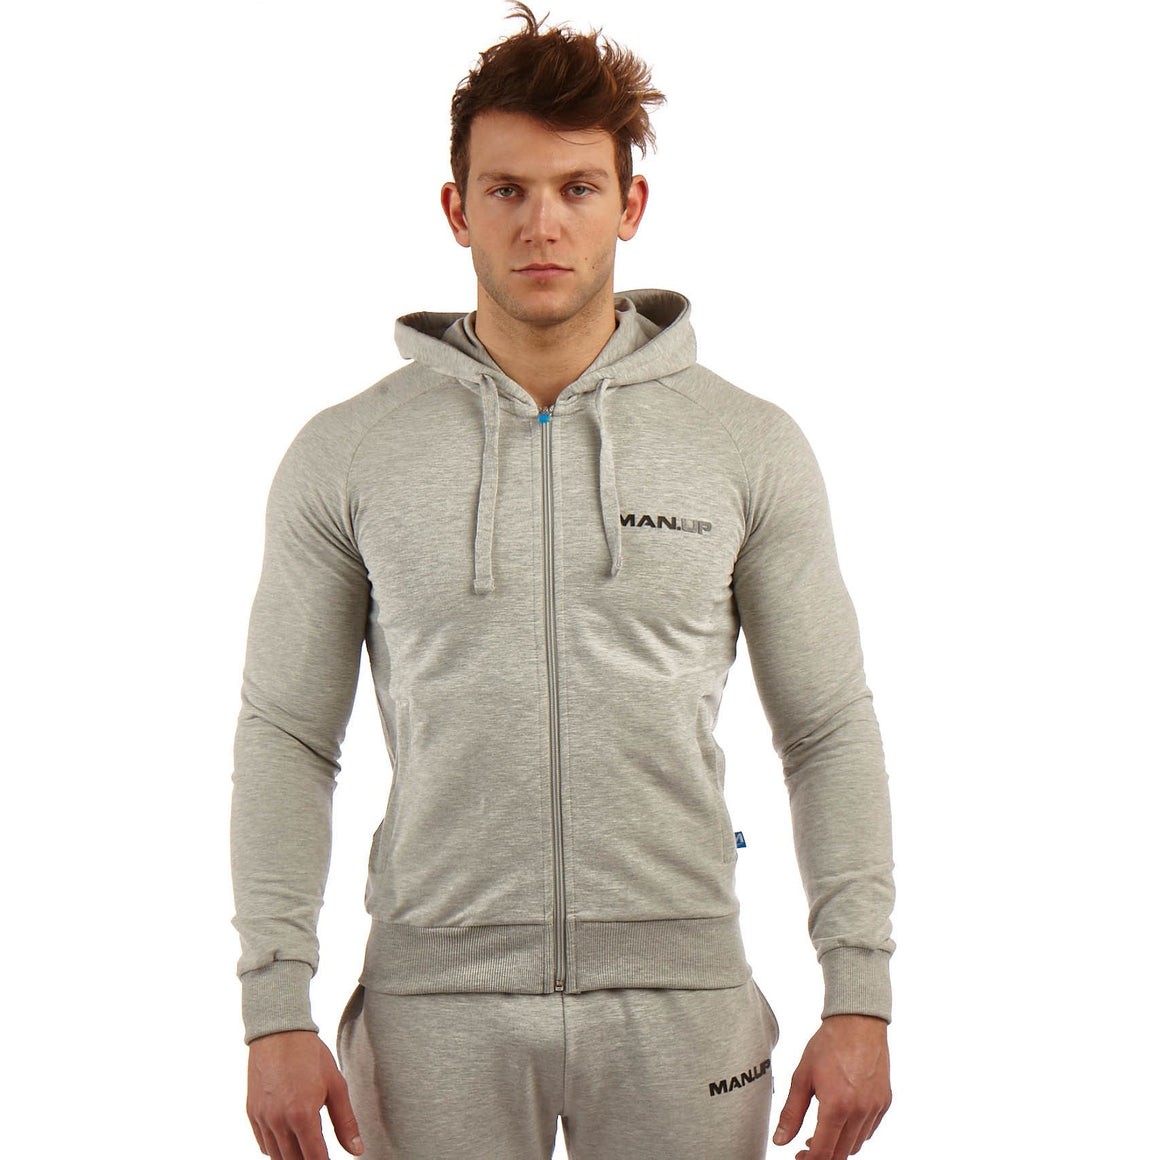 Man Up Hoodie Grey Marl